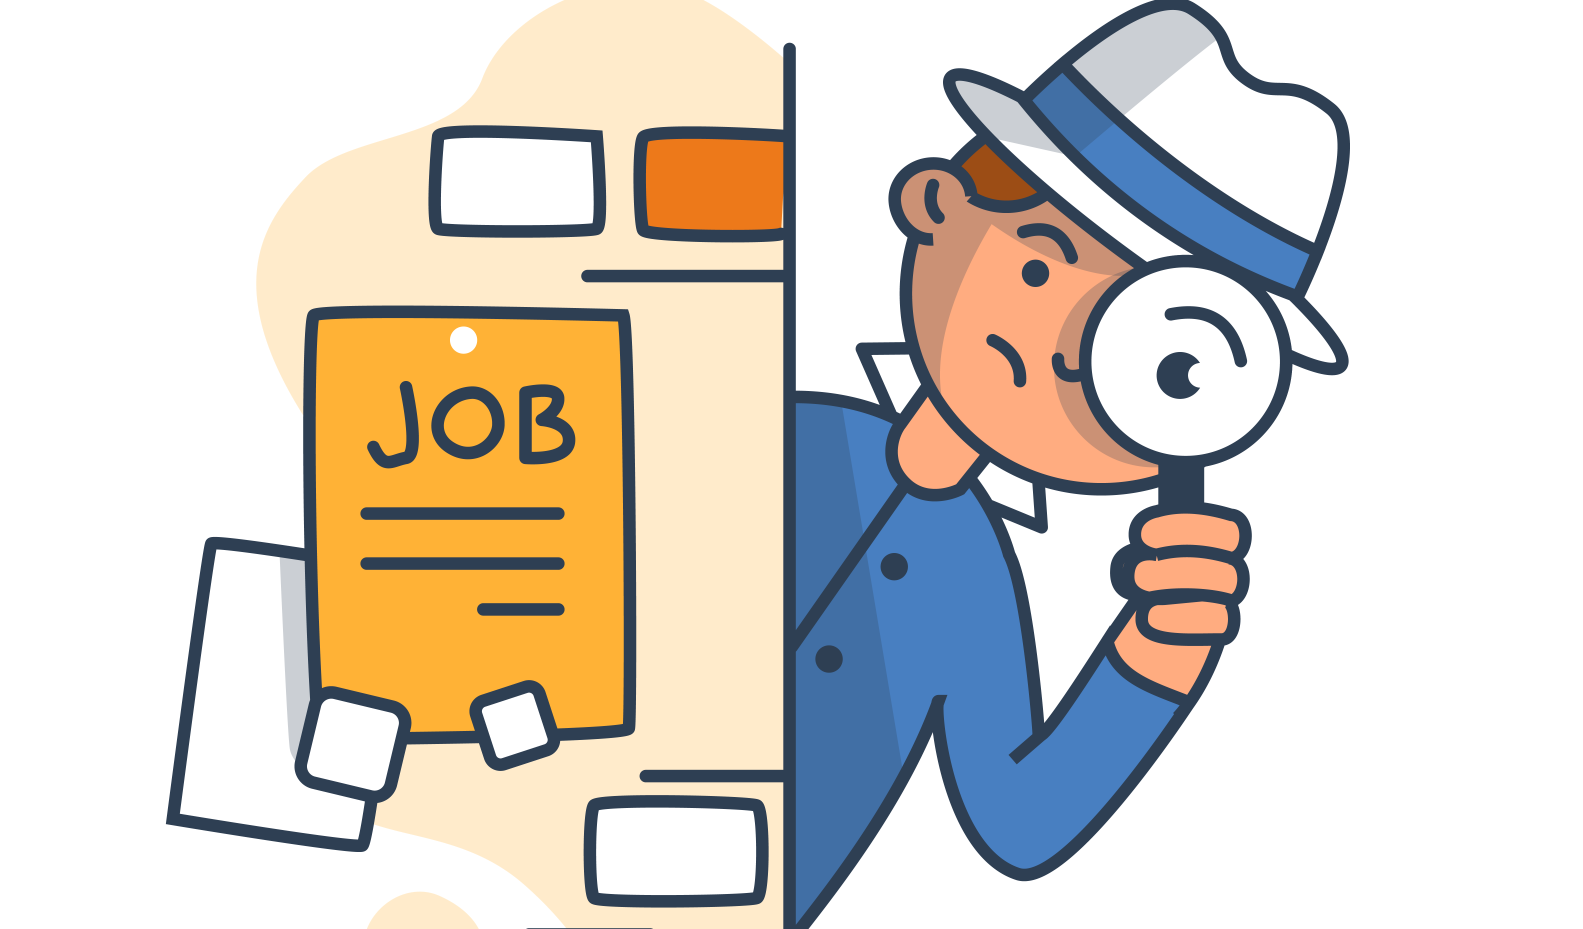 jobs clipart job applicant